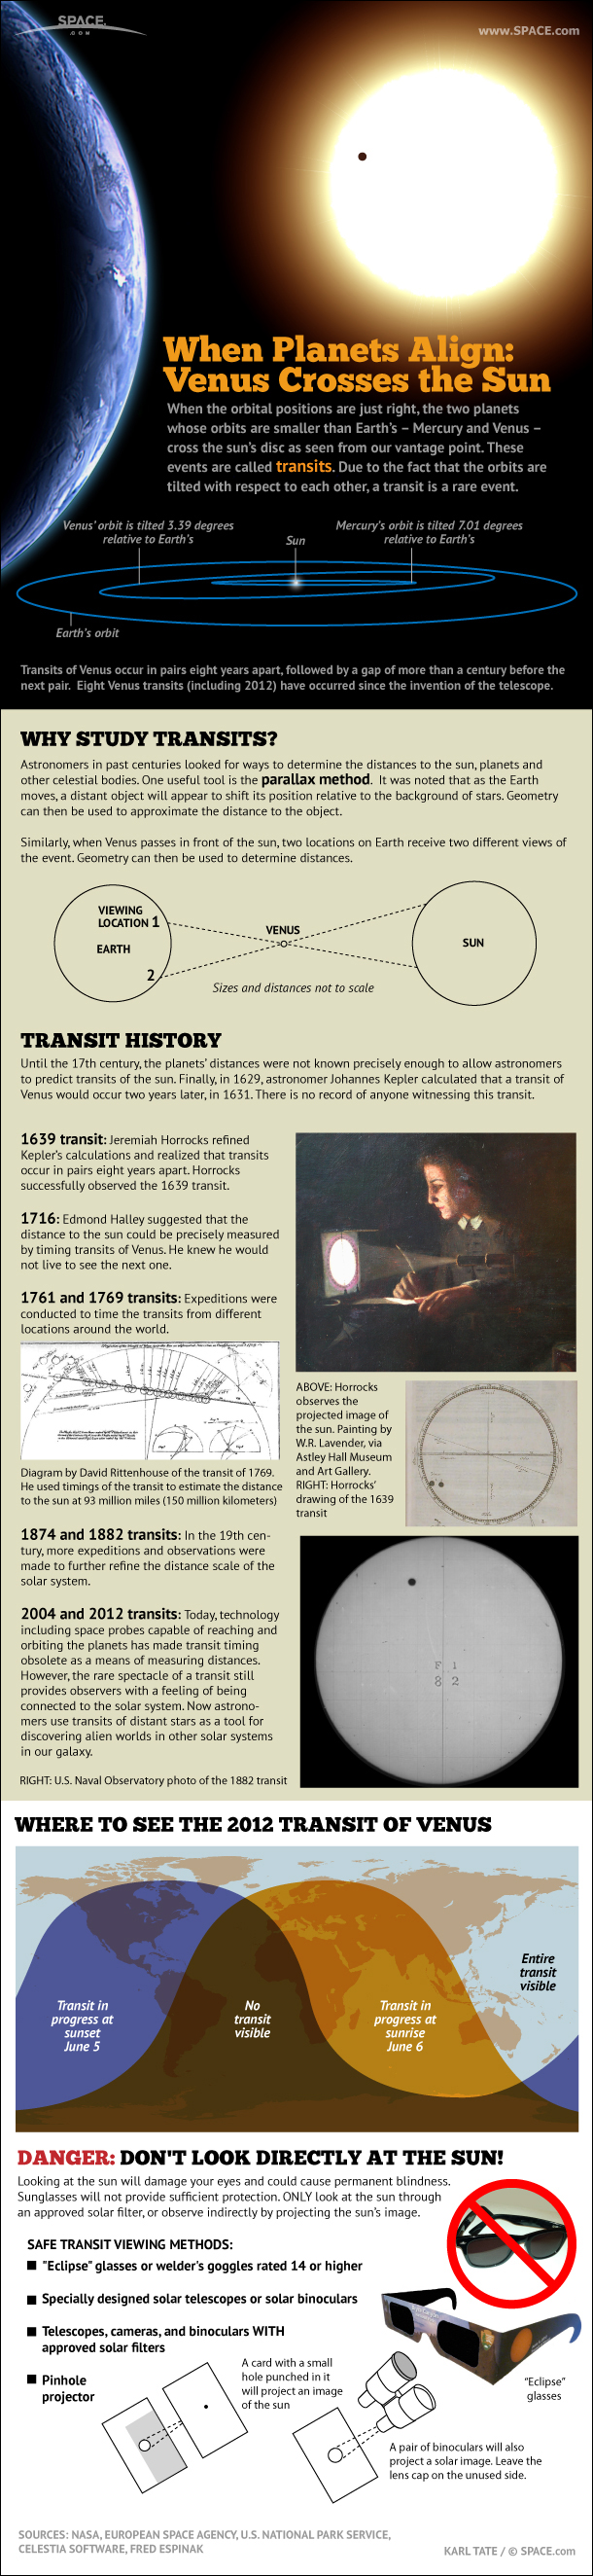 Venus Transit of the Sun: A 2012 Observer's Guide (Infographic)